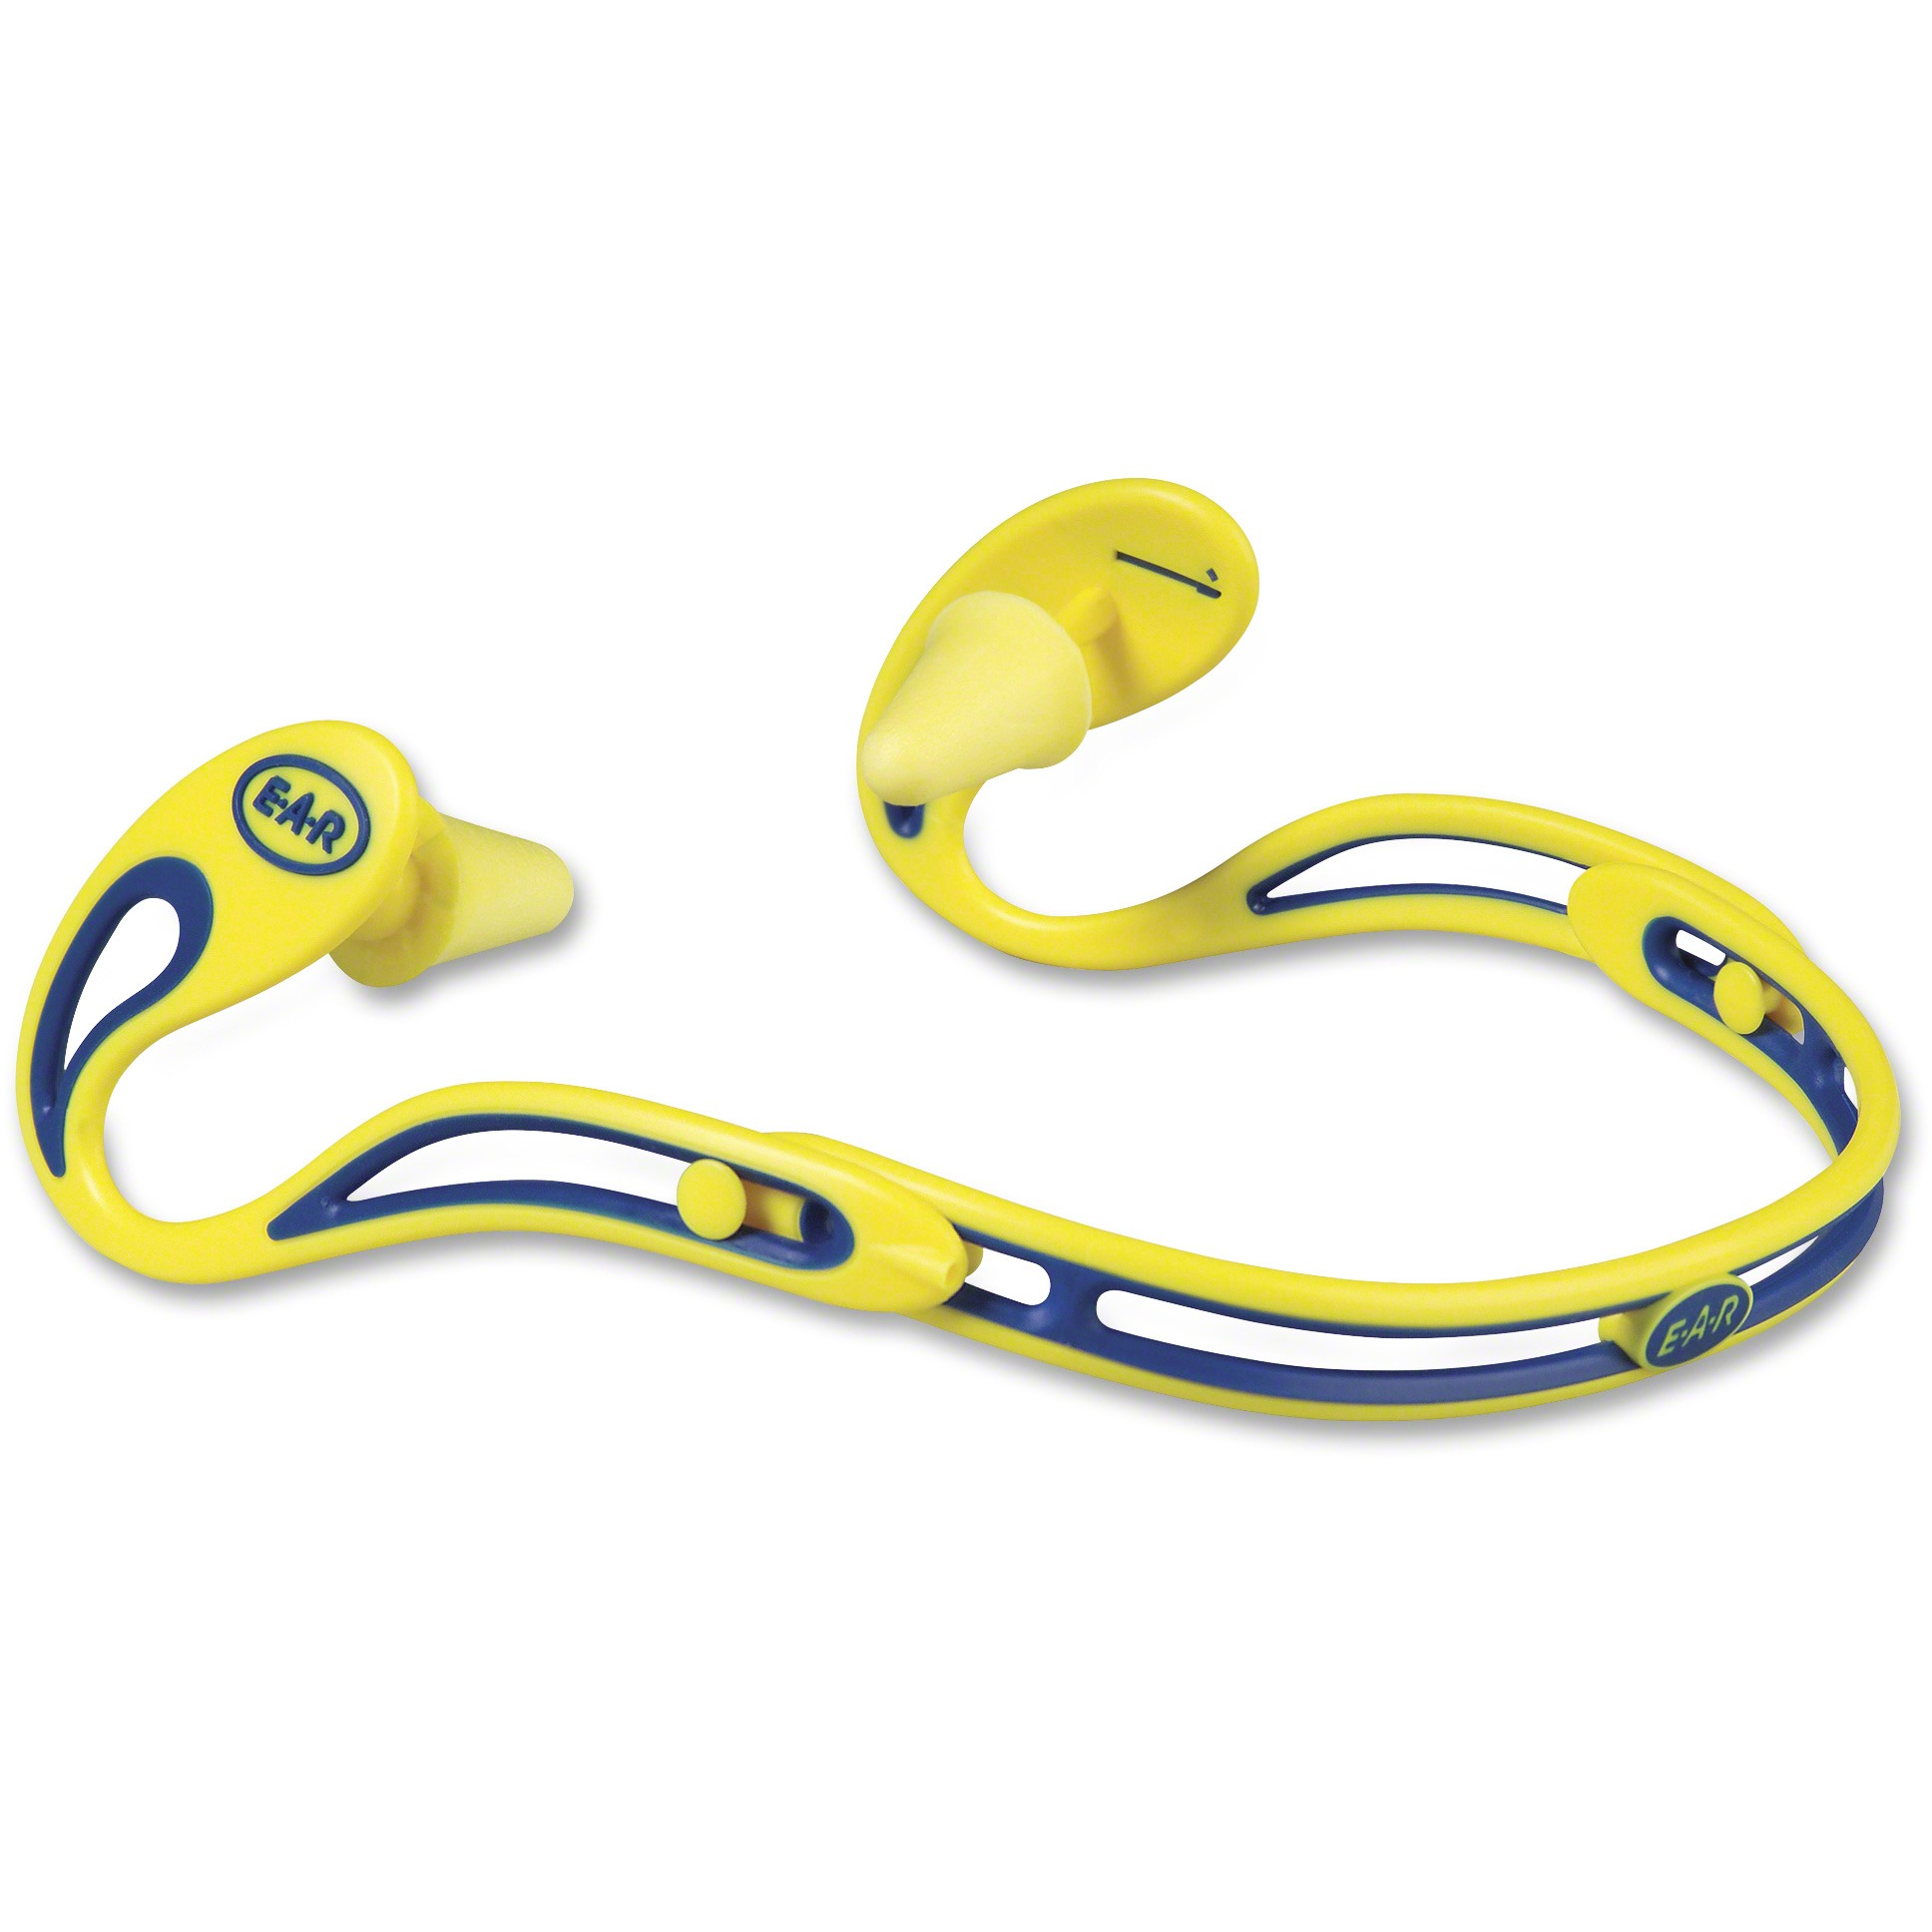 E-A-R, MMM3222000, Swerve Banded Corded Hearing Protectors, 1 Each, Yellow